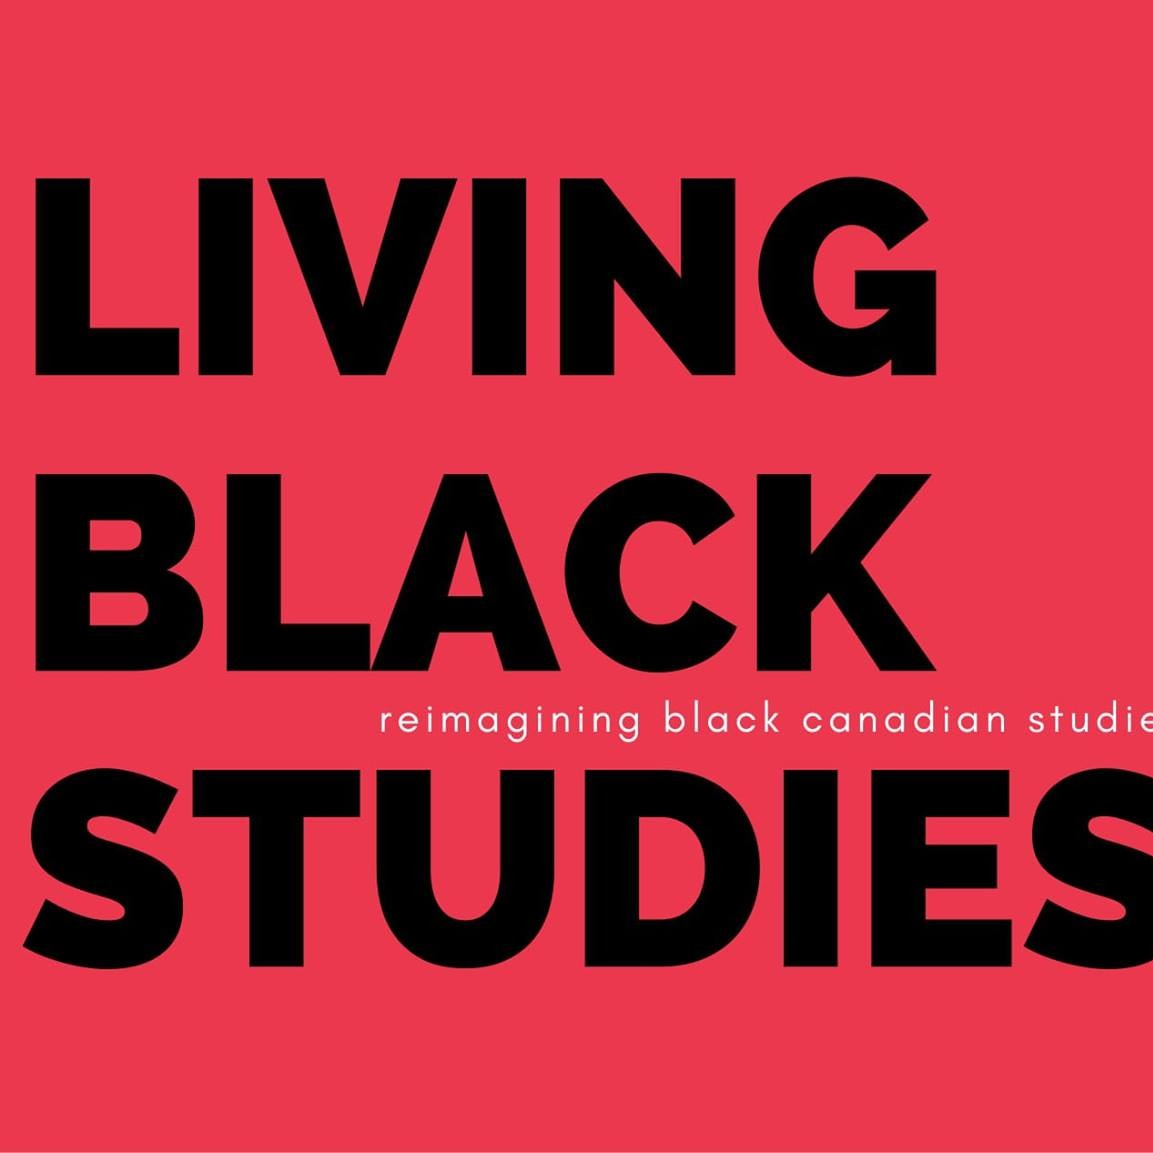 Black Studies at Concordia